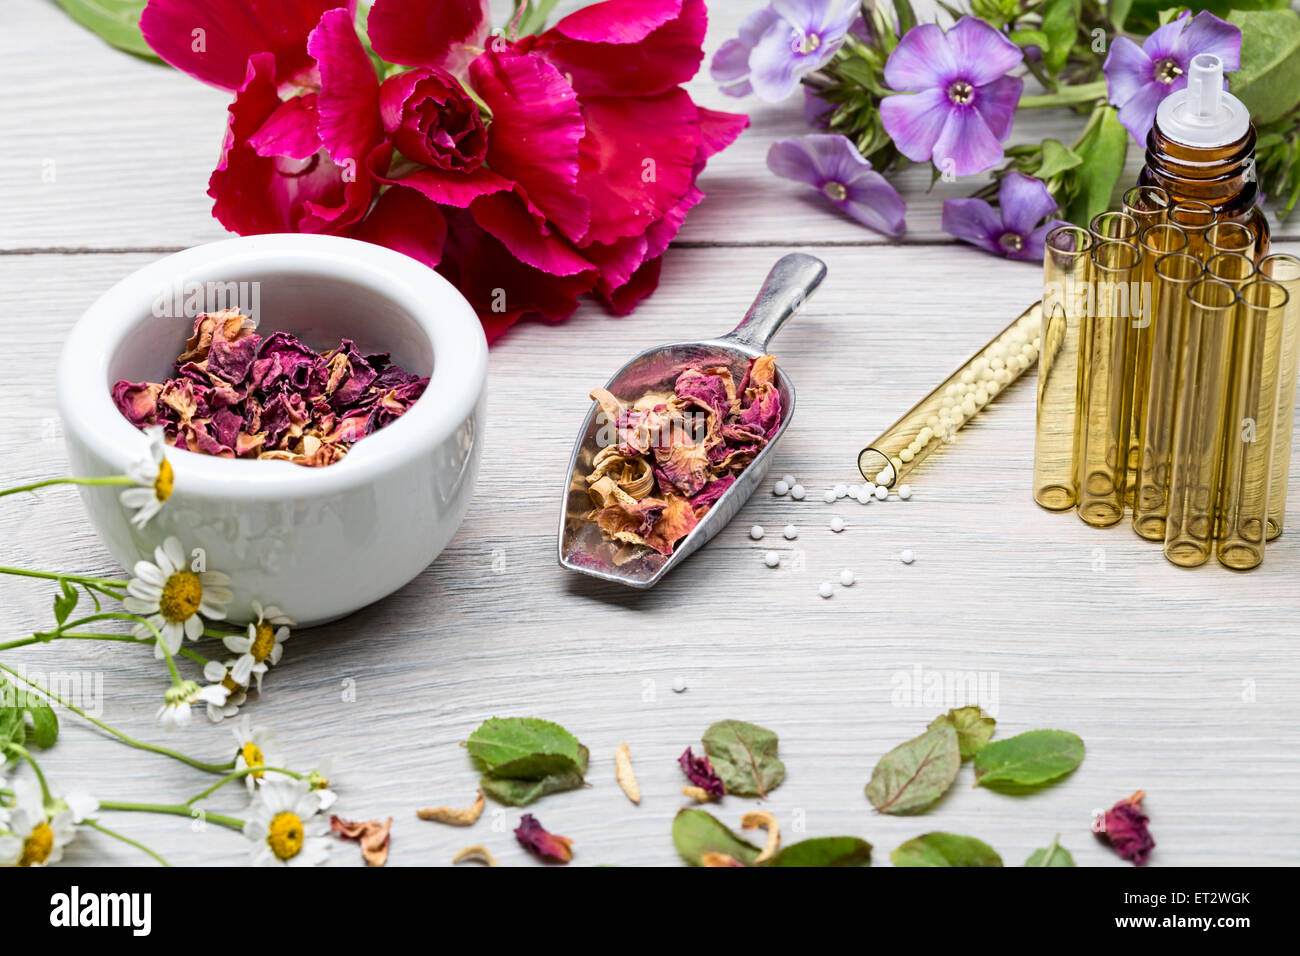 homeopathy lab with herbals and flowers - Stock Image